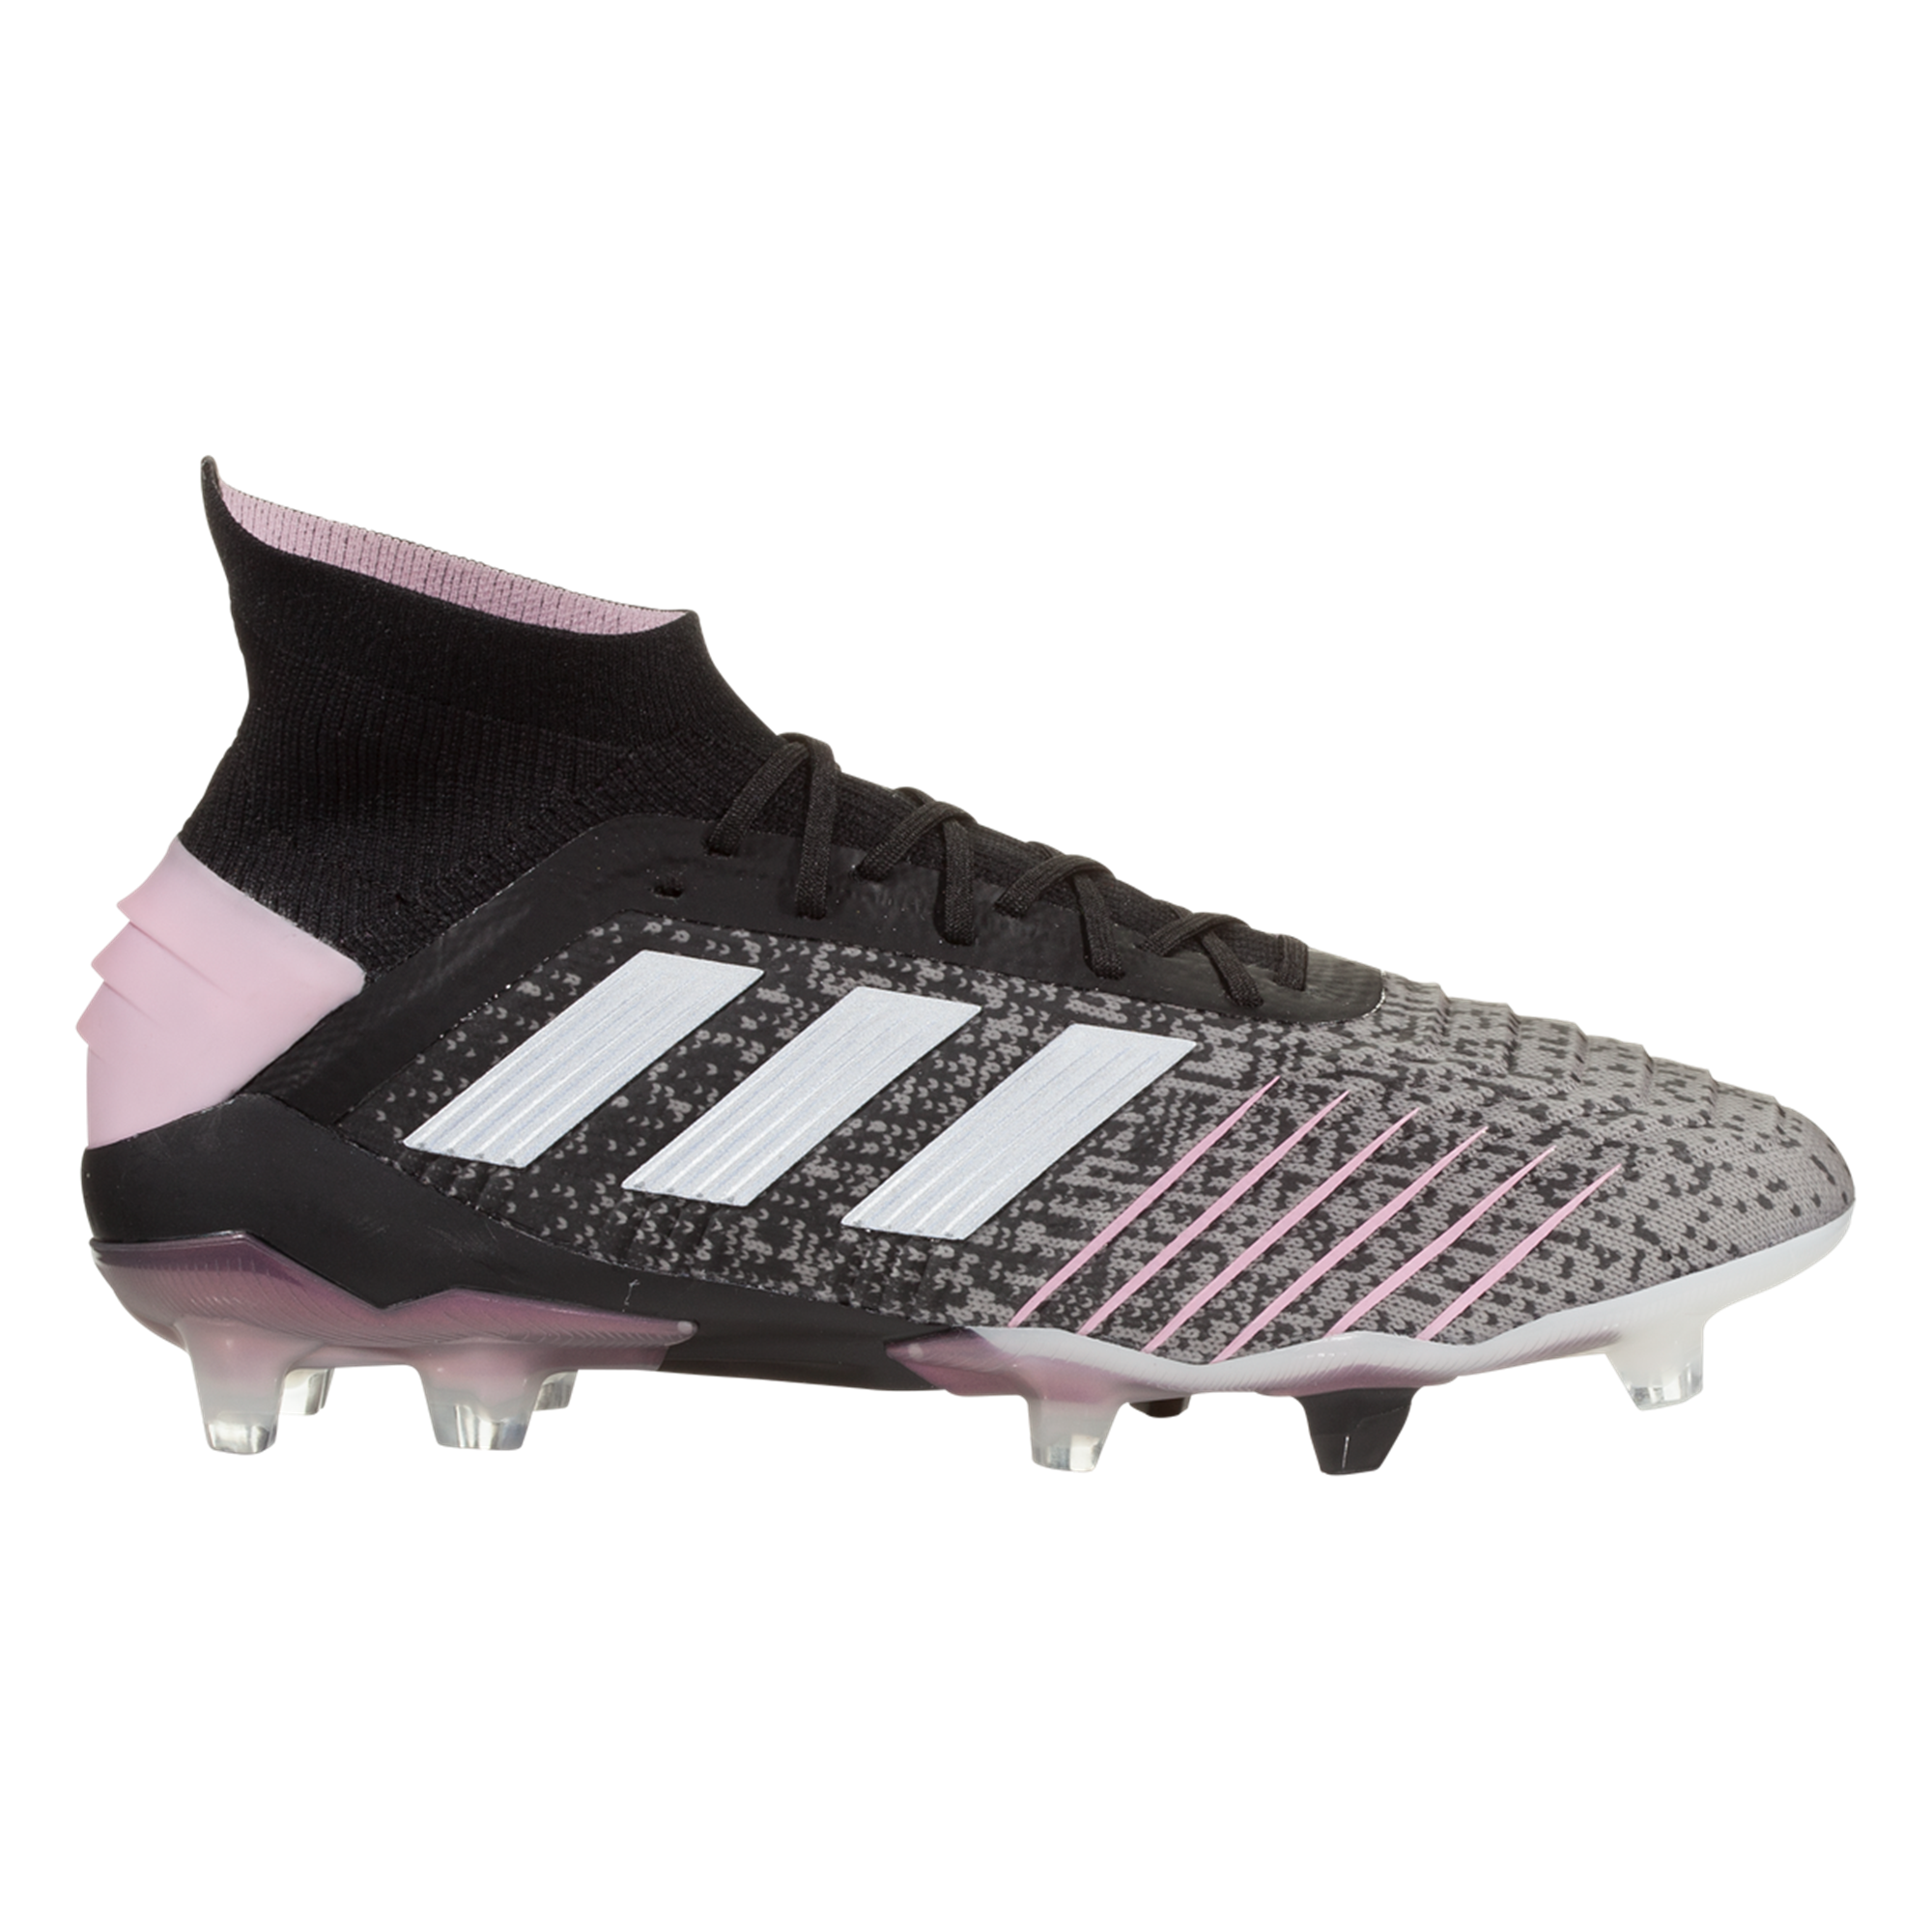 Adidas Predator 19 1 Fg Women S Soccer Cleat Black Grey Pink Womens Soccer Cleats Best Soccer Cleats Cool Football Boots